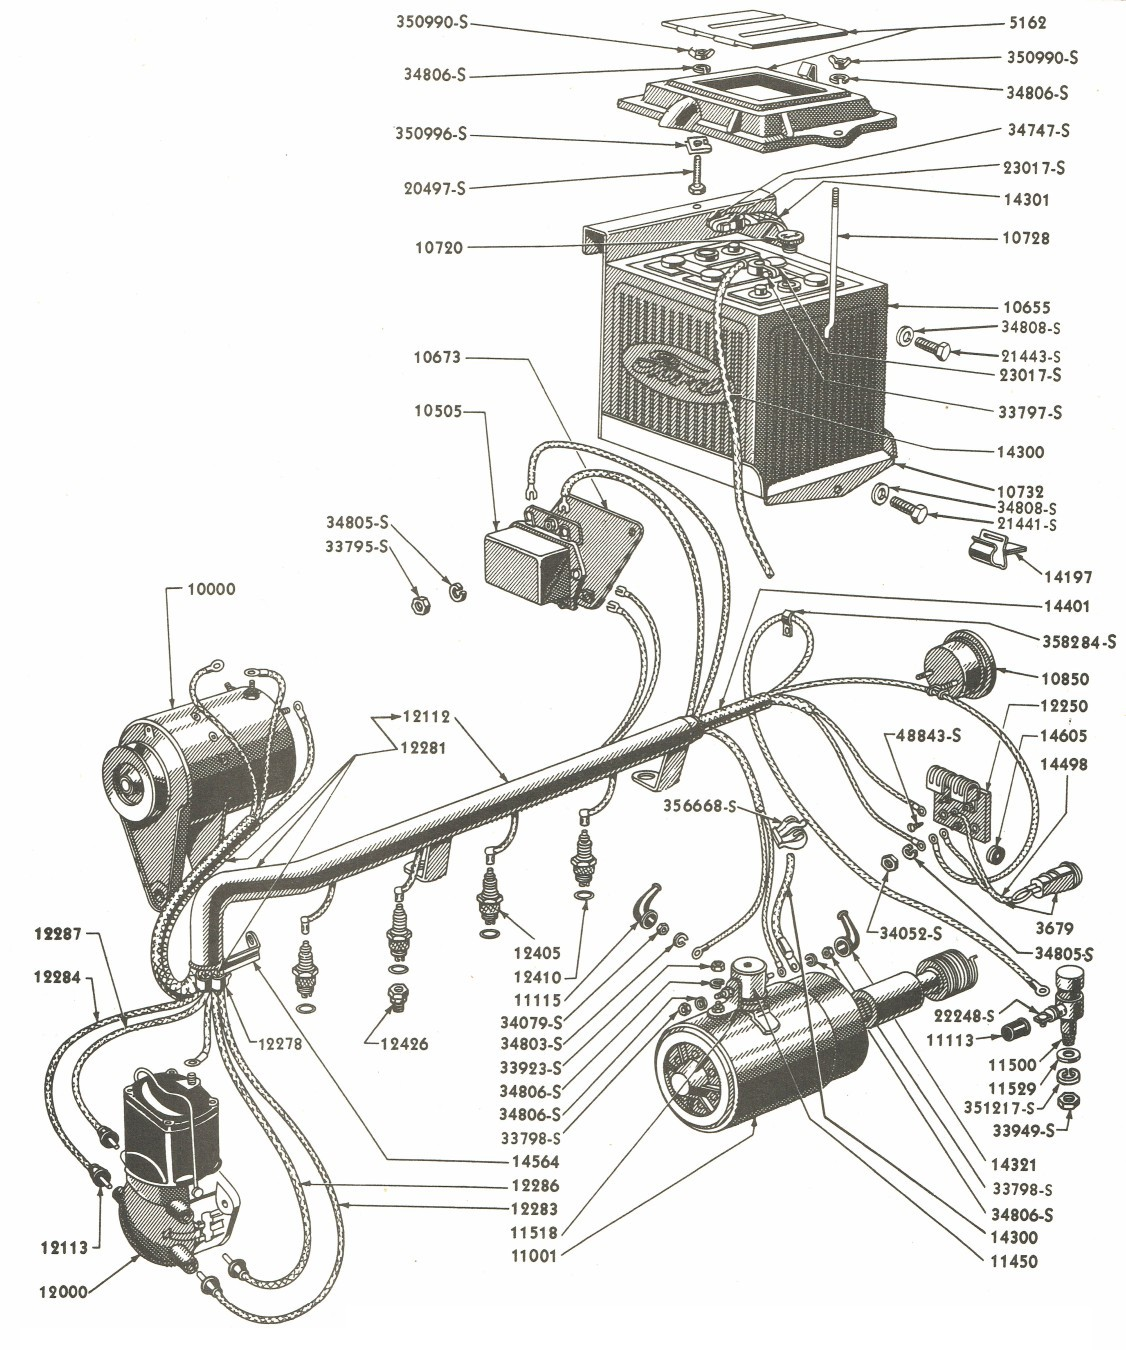 hight resolution of ford tractor wiring harness wiring diagram used ford 8n wiring harness diagram 12 volt 8n ford tractor wiring